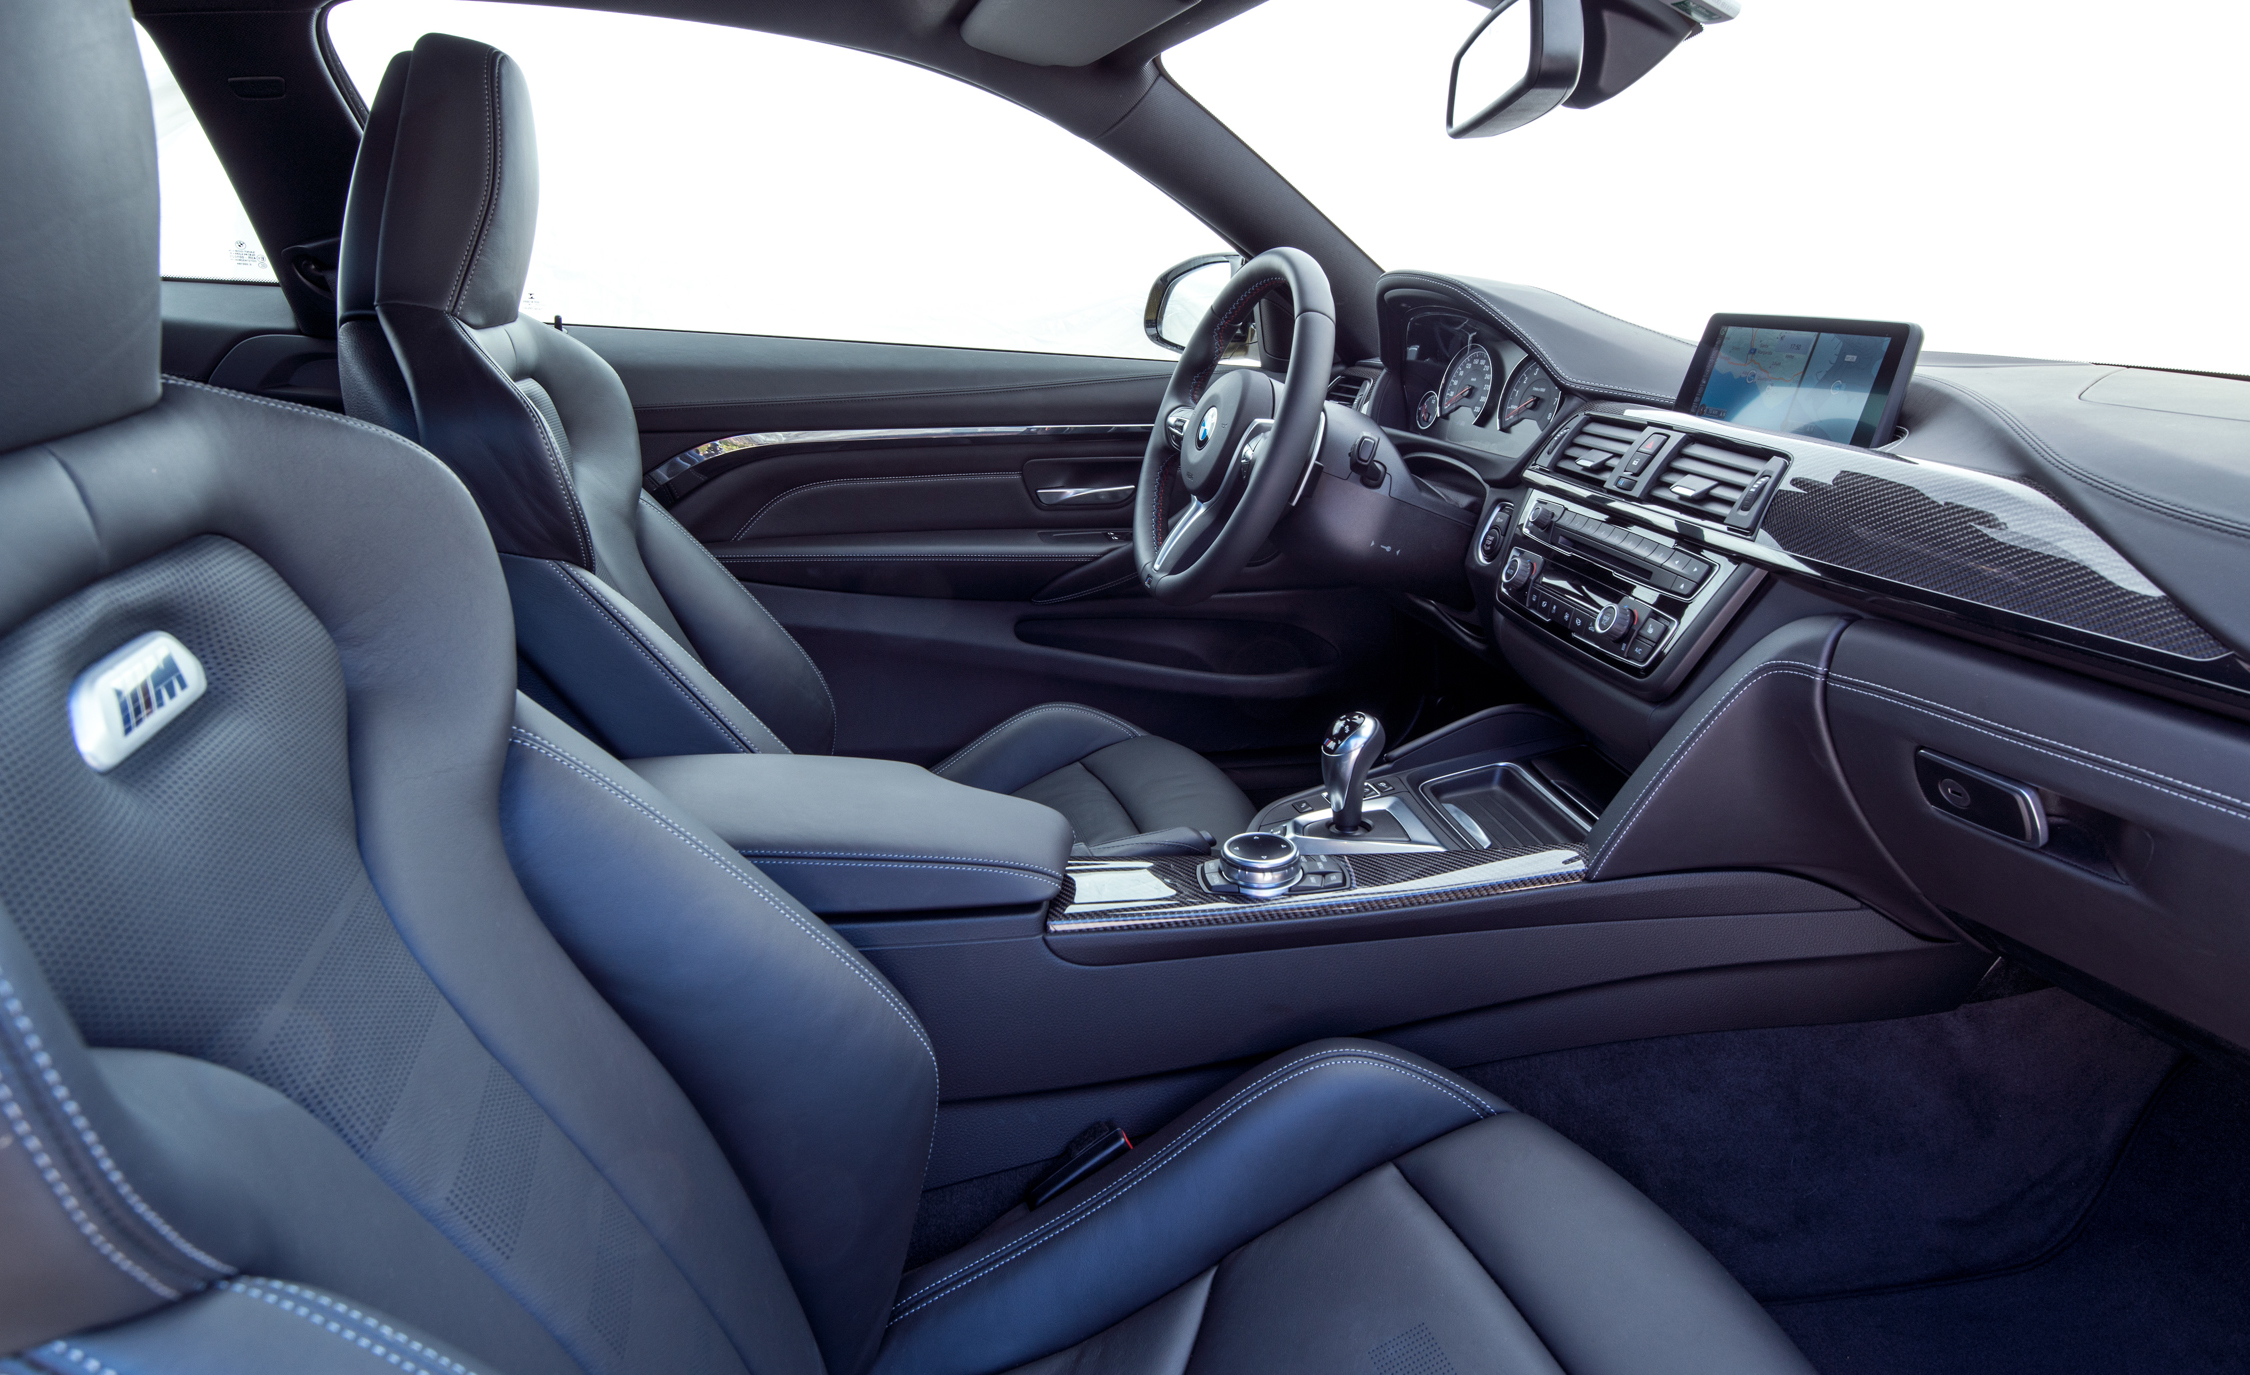 2015 BMW M4 Coupe Interior (Photo 20 of 41)